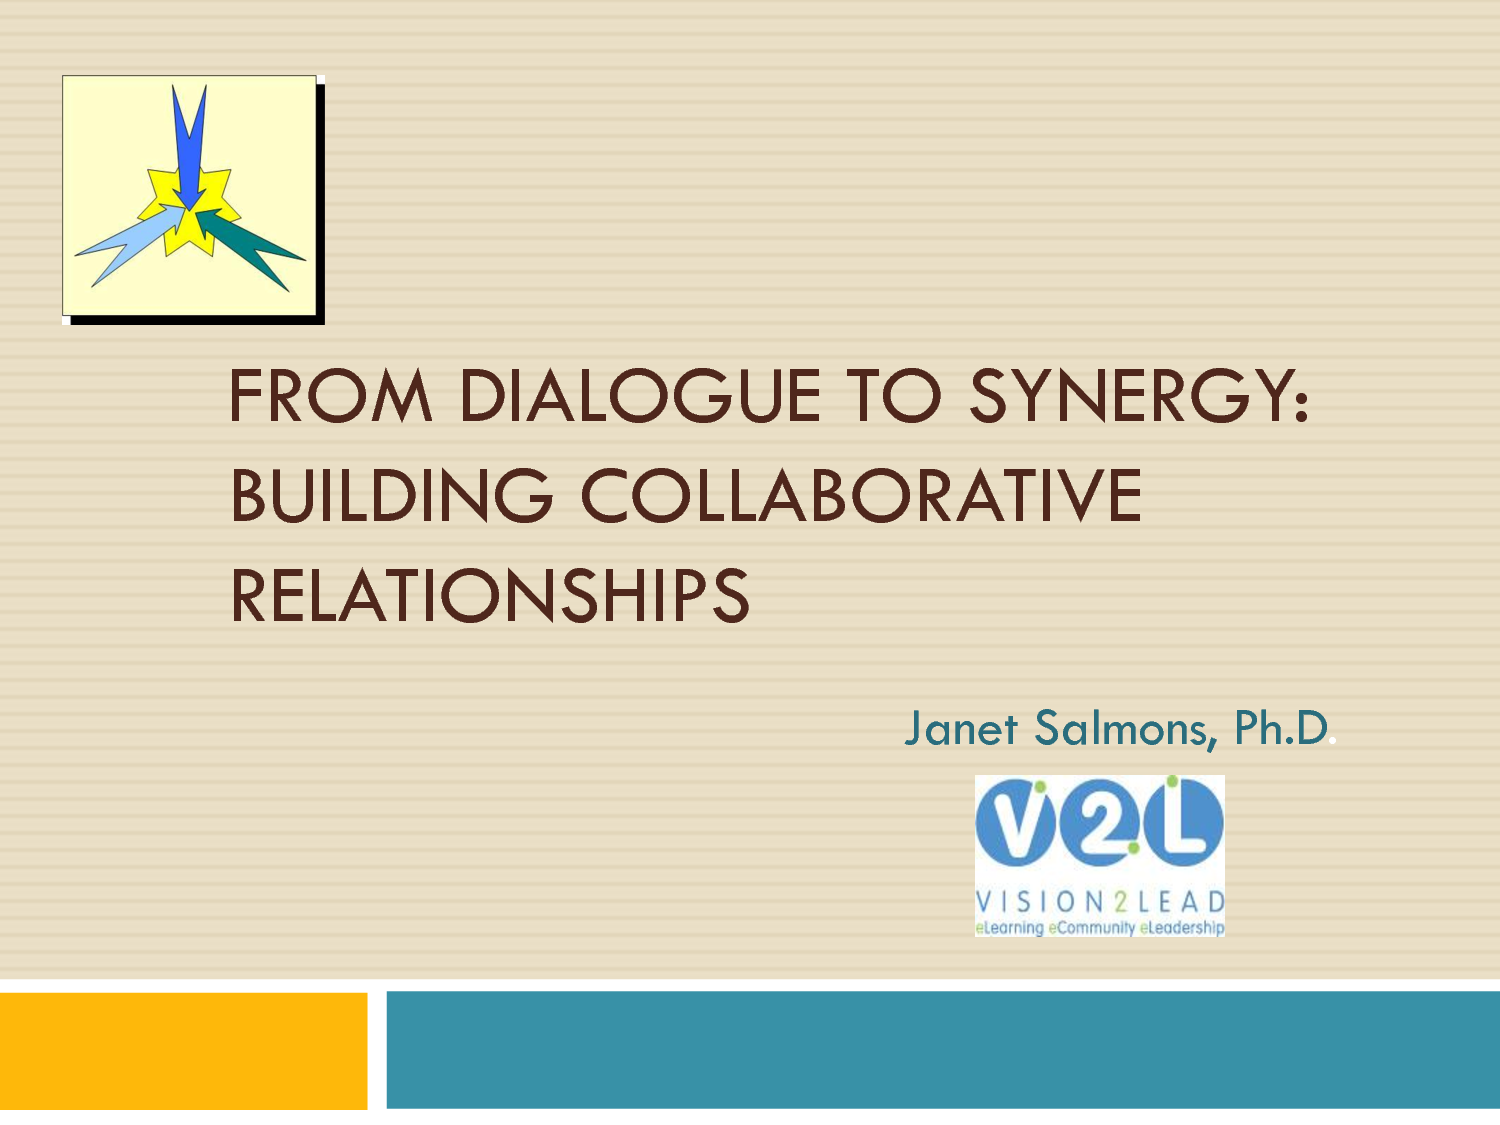 Definition: Developing Collaborative Supplier Partnerships